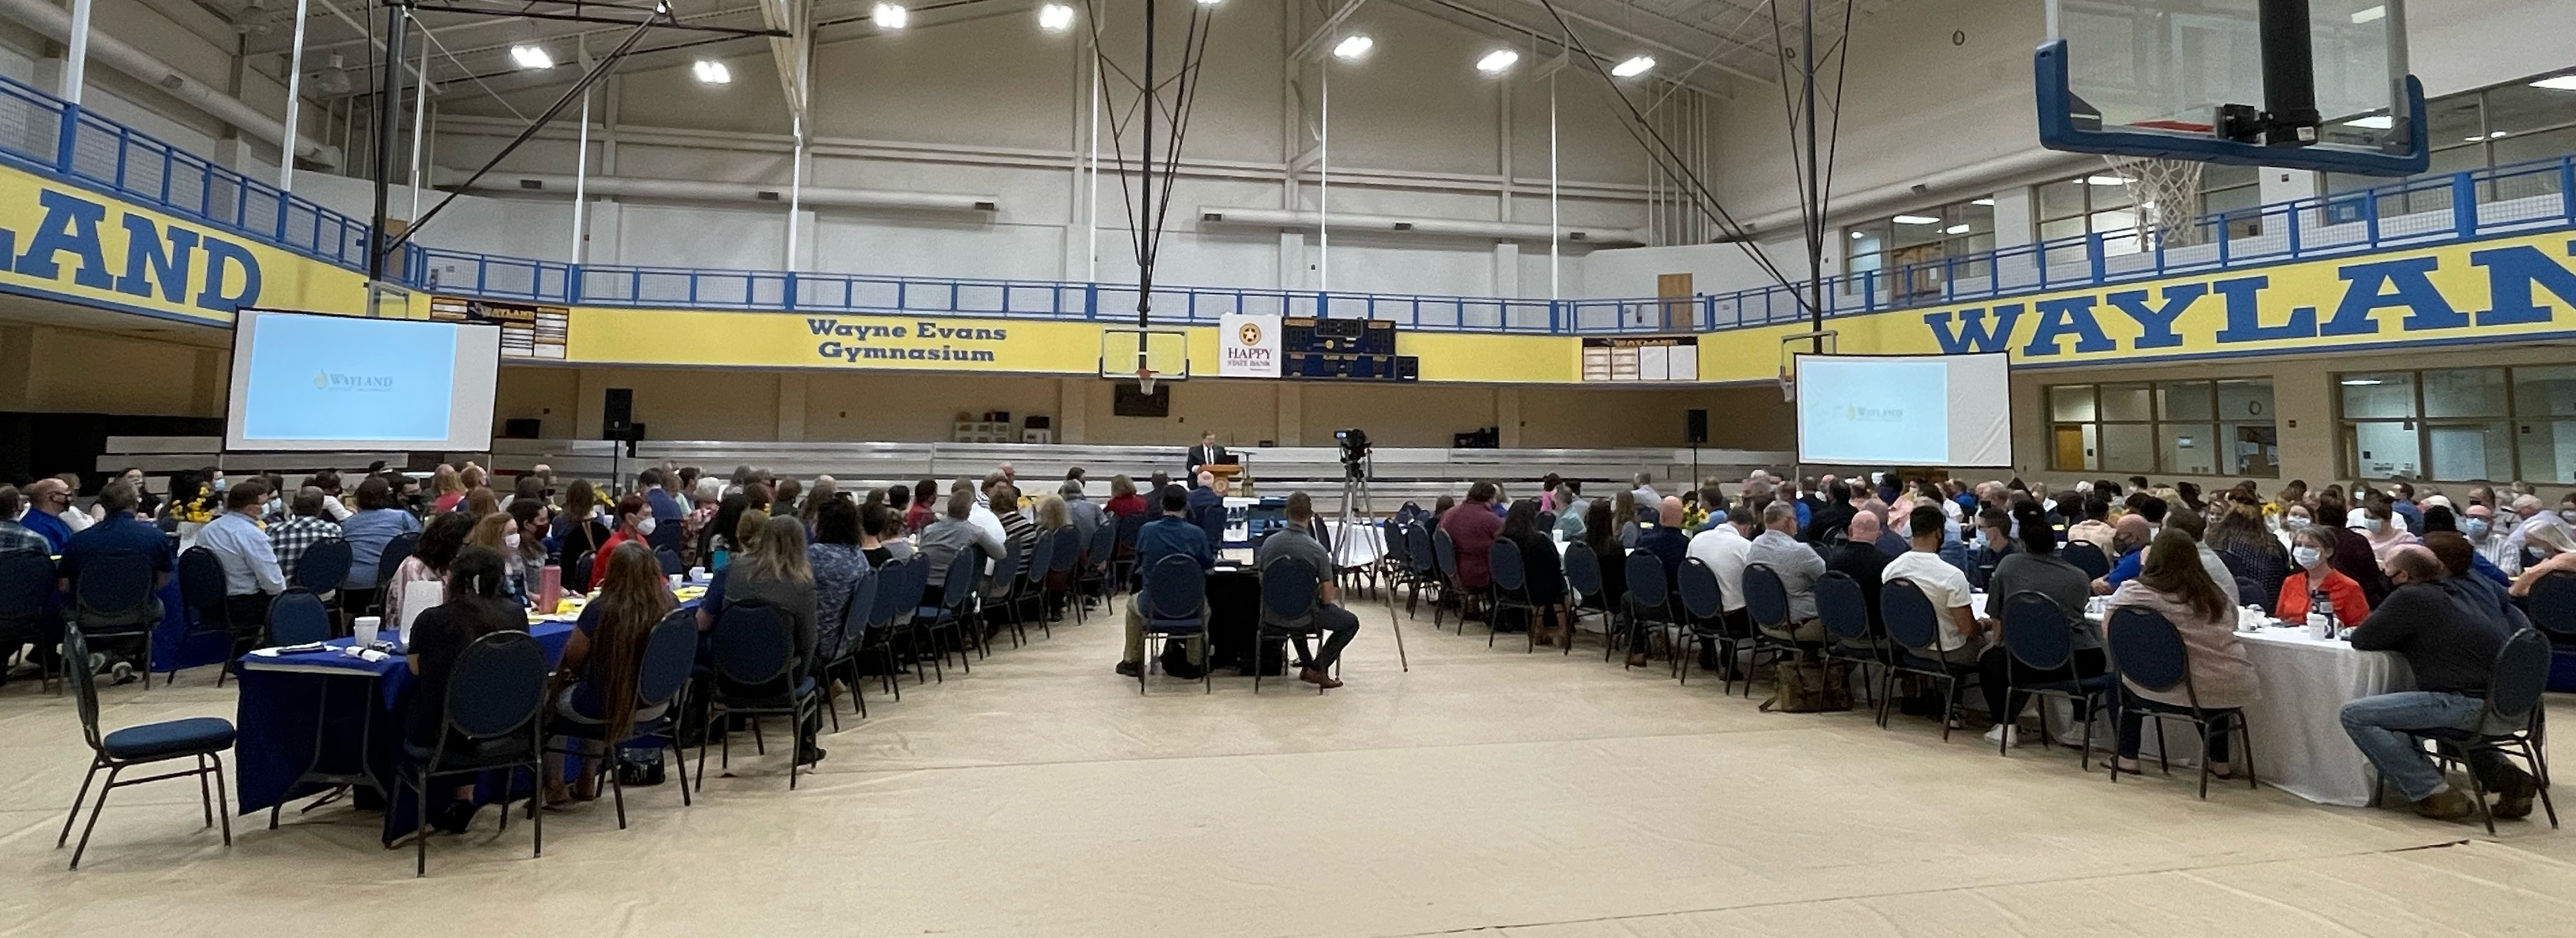 Wayland faculty and staff gather in the Laney Center